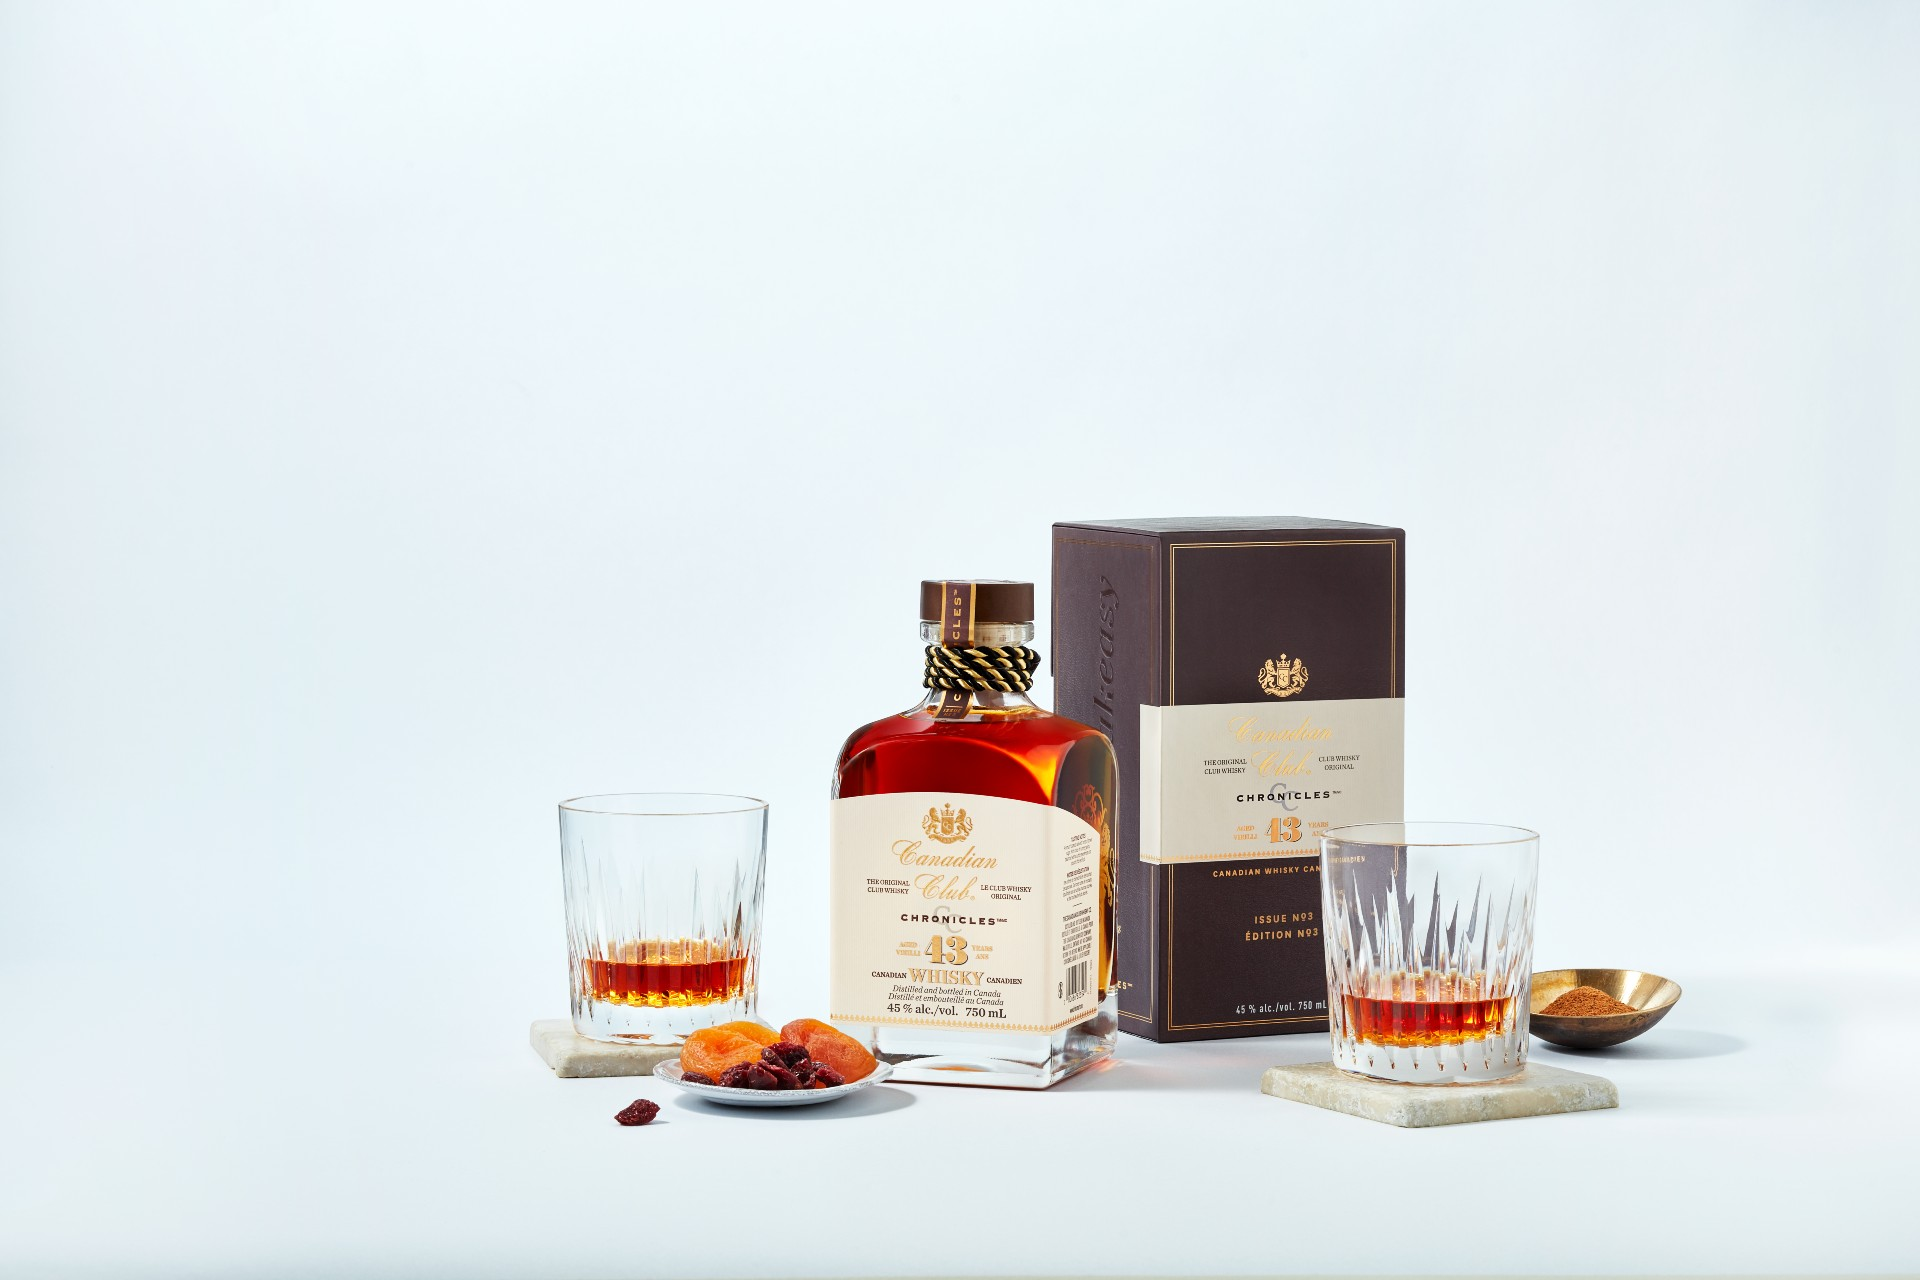 Canadian Club 43 Year Old whisky made in Windsor, Ontario.